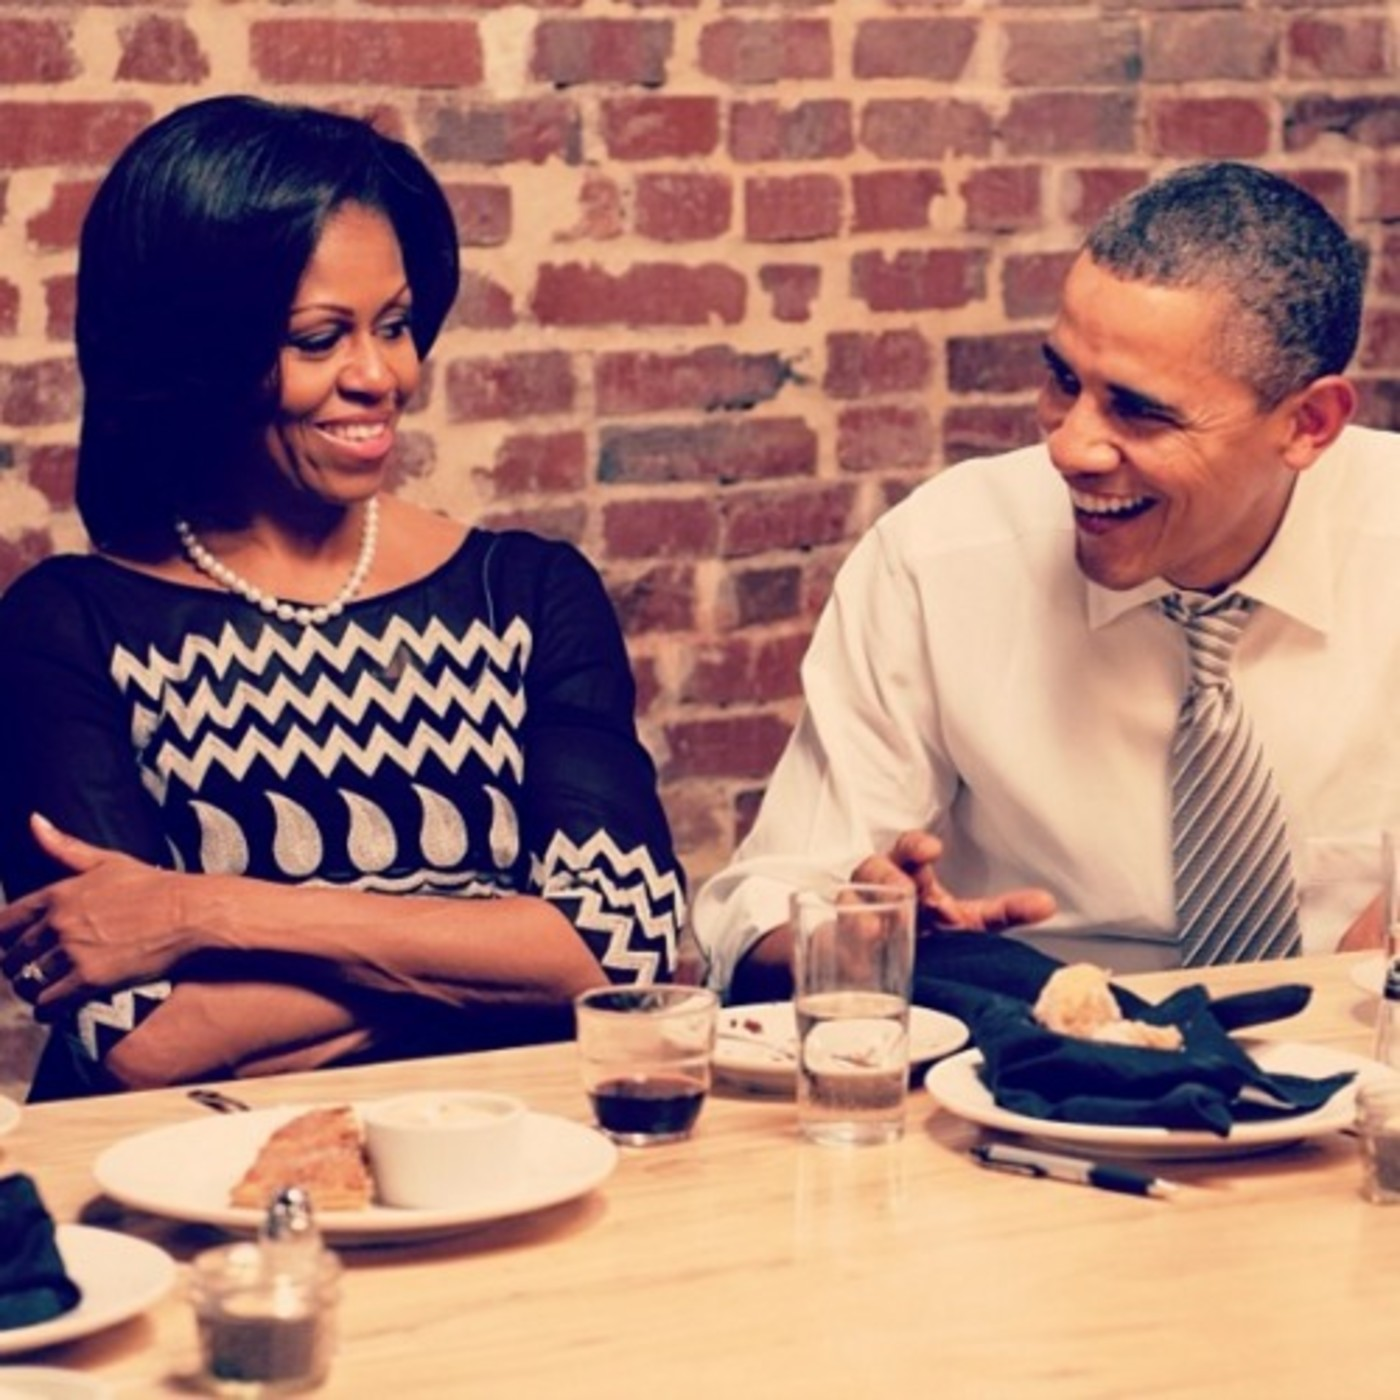 barack-obama-instagram-with-michelle-obama